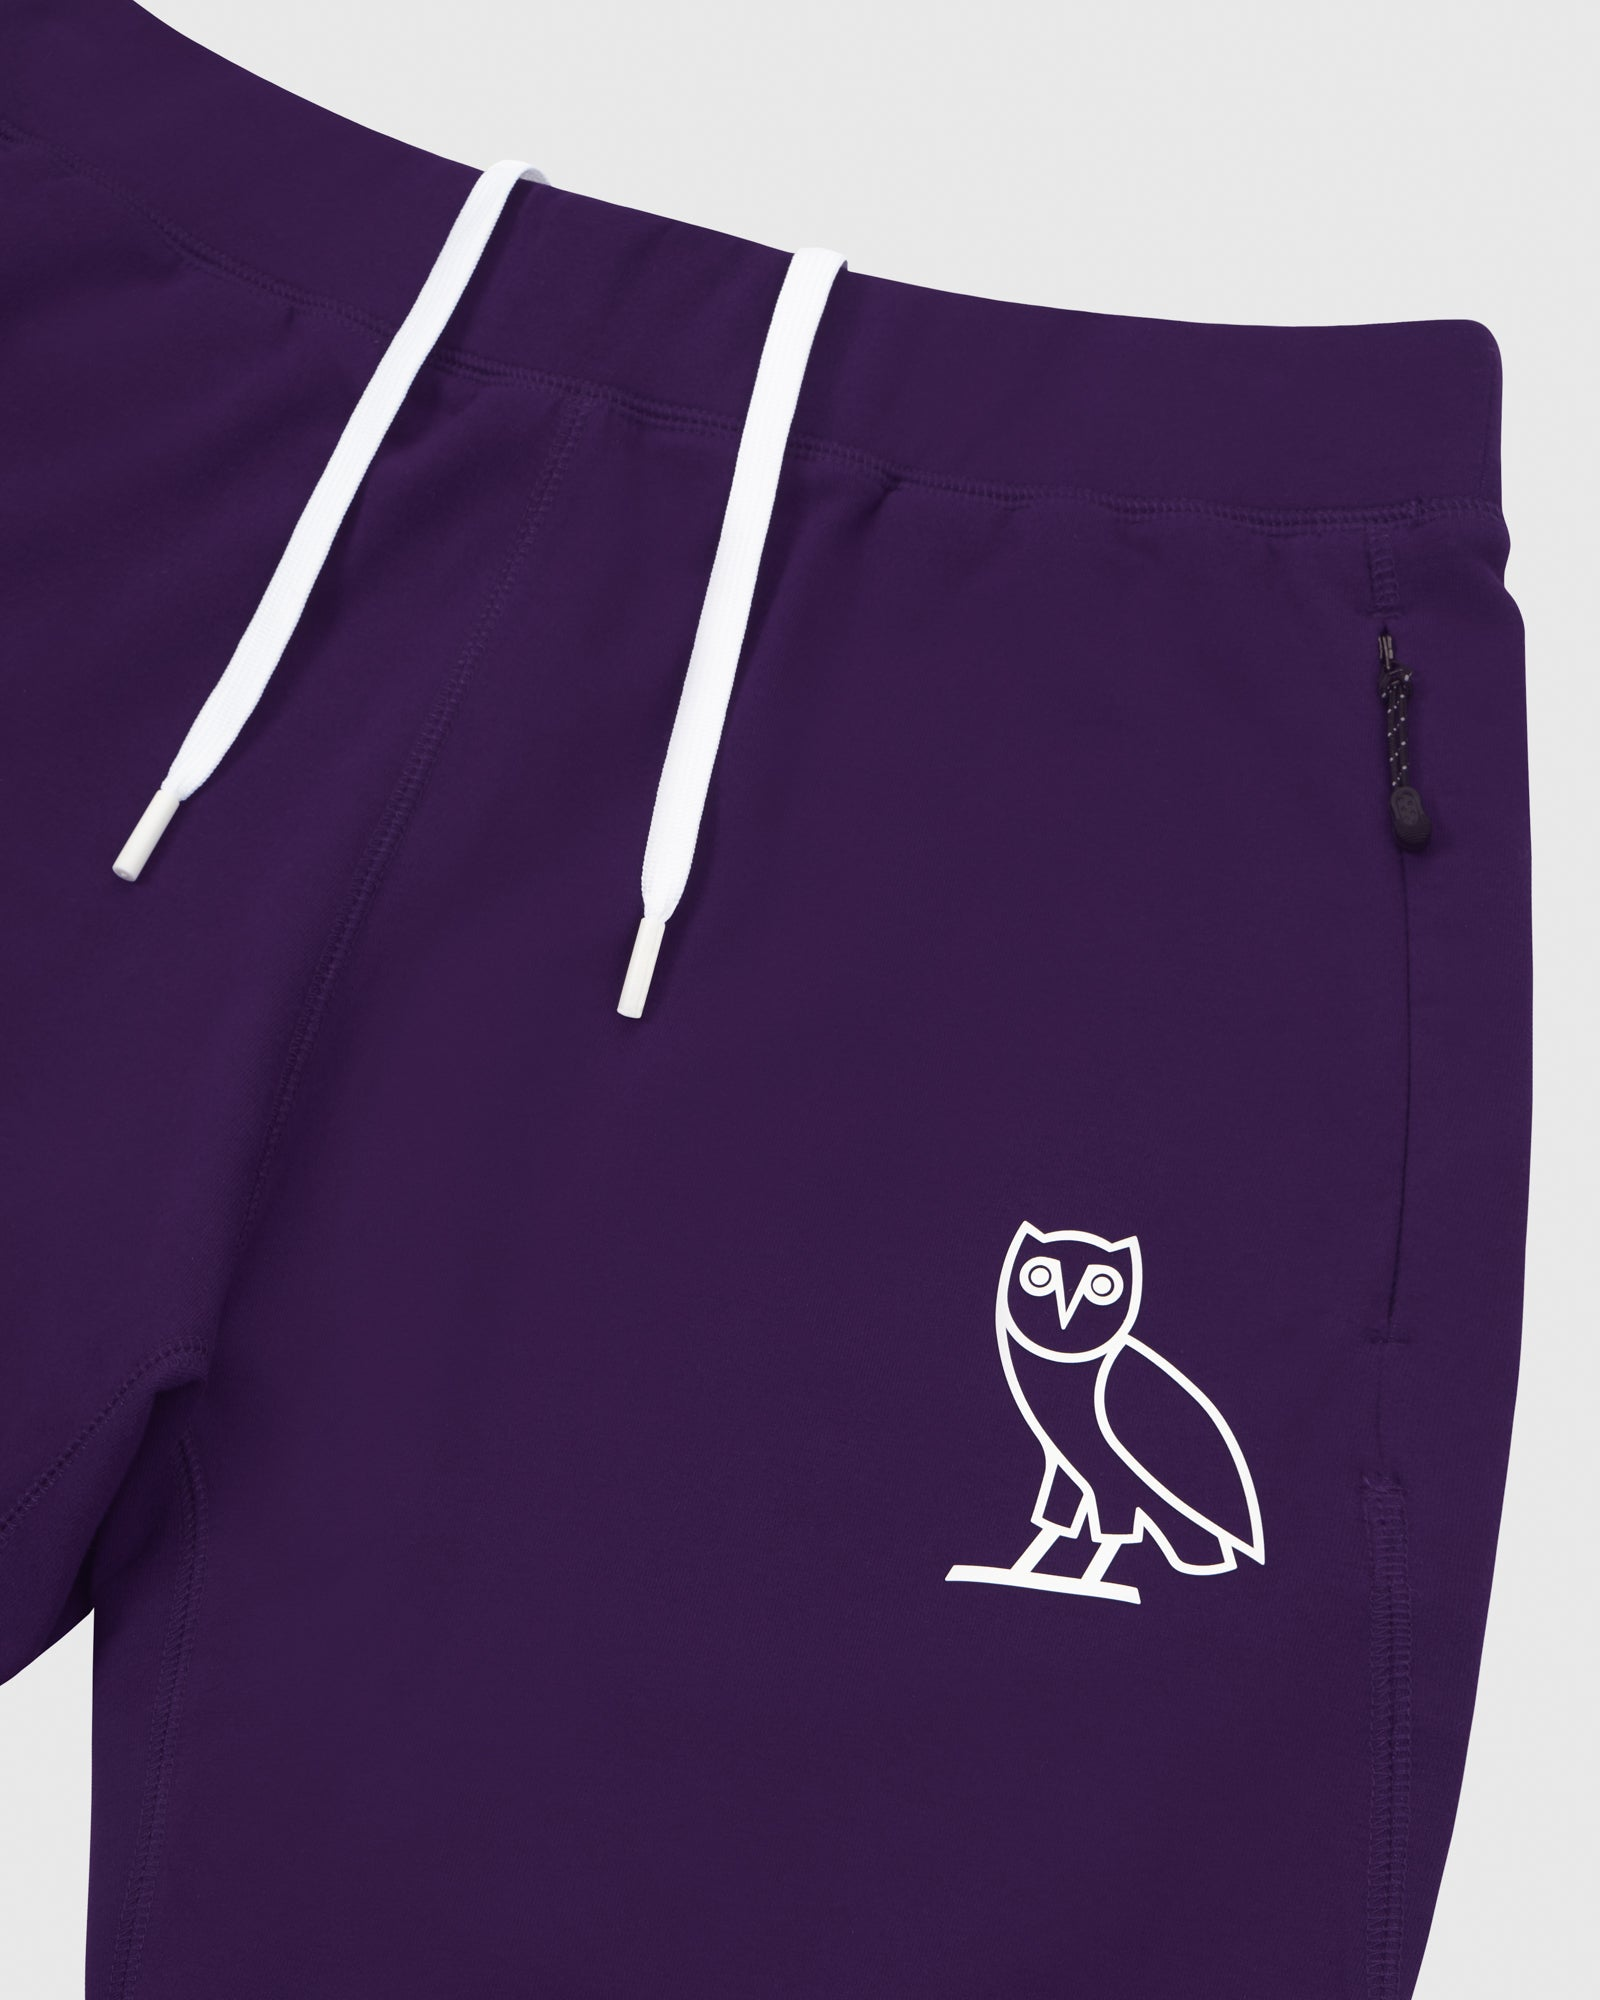 OVO LIGHTWEIGHT FRENCH TERRY SWEATPANT - PURPLE IMAGE #3